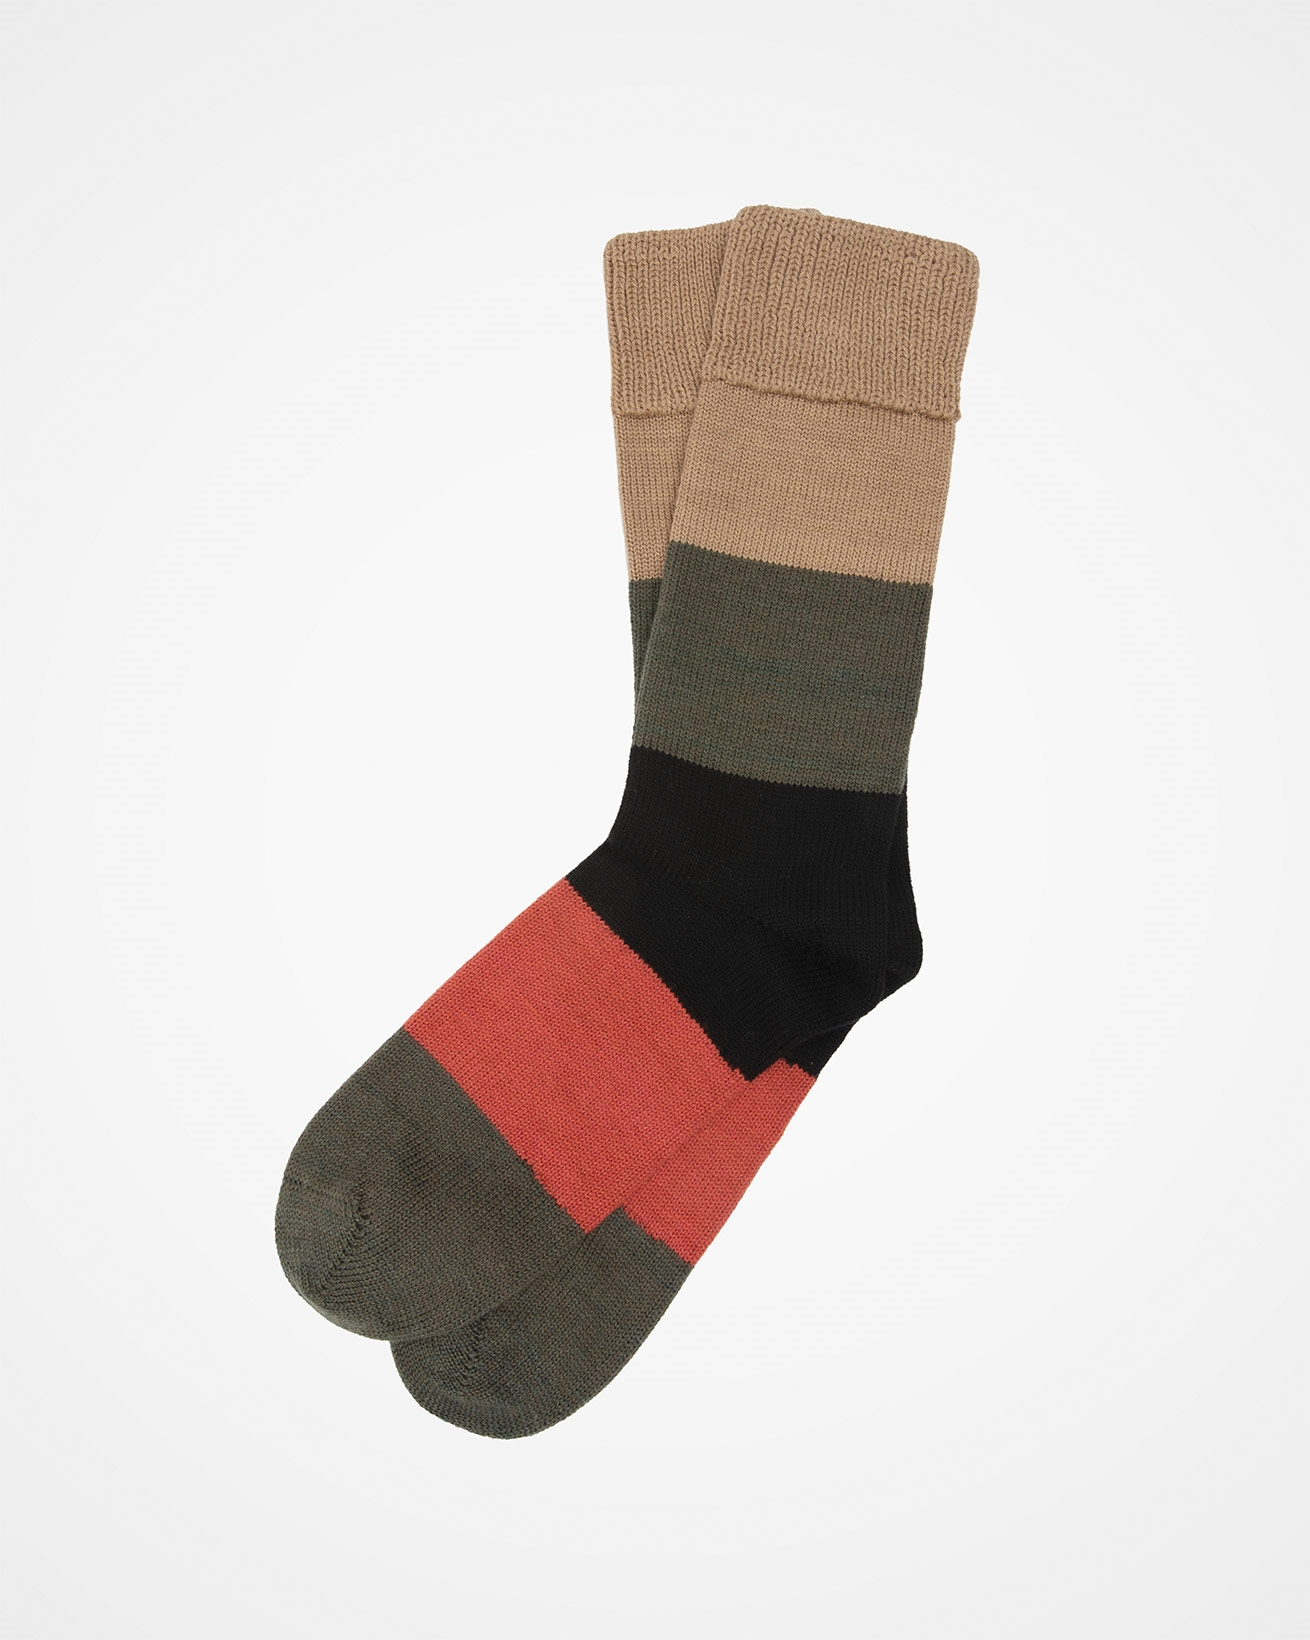 7760_mens-merino-cotton-colourblock-socks_camel_flat.jpg